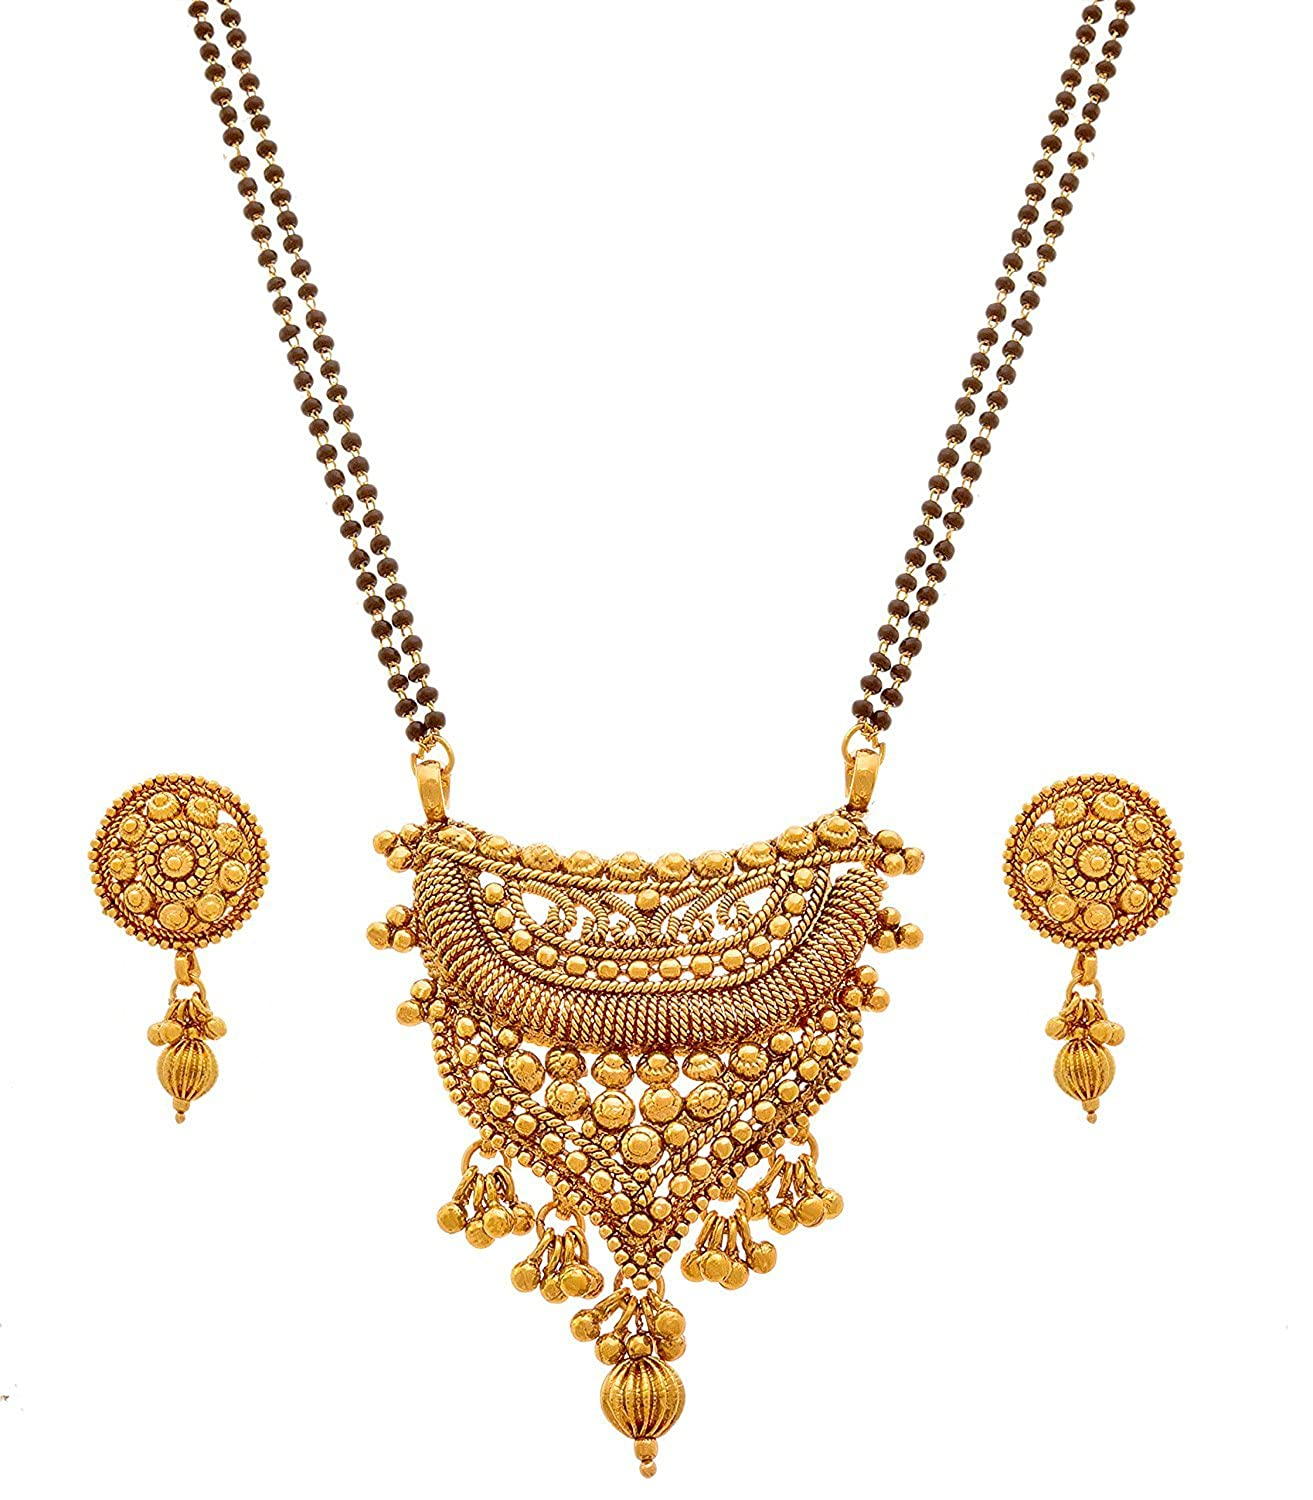 1 Gram Jewellery: Traditional Ethnic One Gram Gold Plated